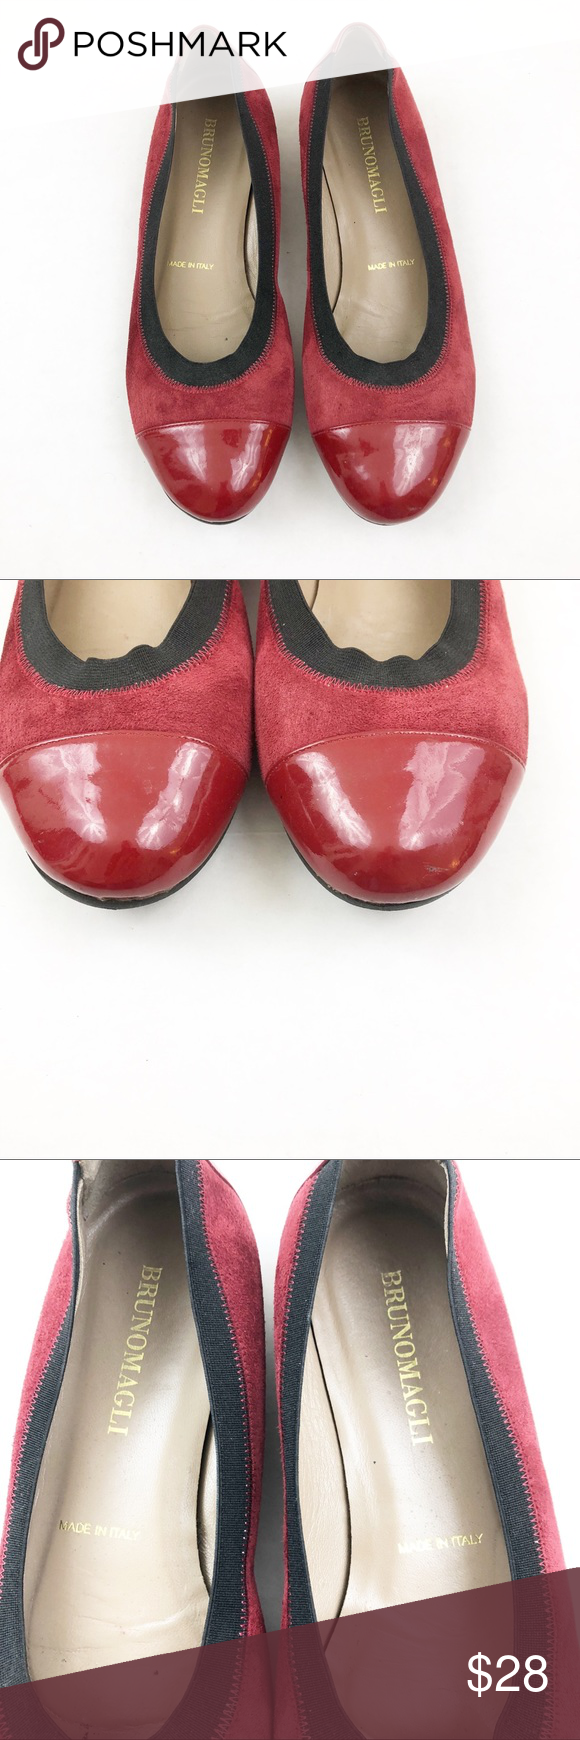 f504fe610685 Bruno Magli Red Suede Ballet Flats Bruno Magli Red Suede Ballet Flats.  Gorgeous pair of